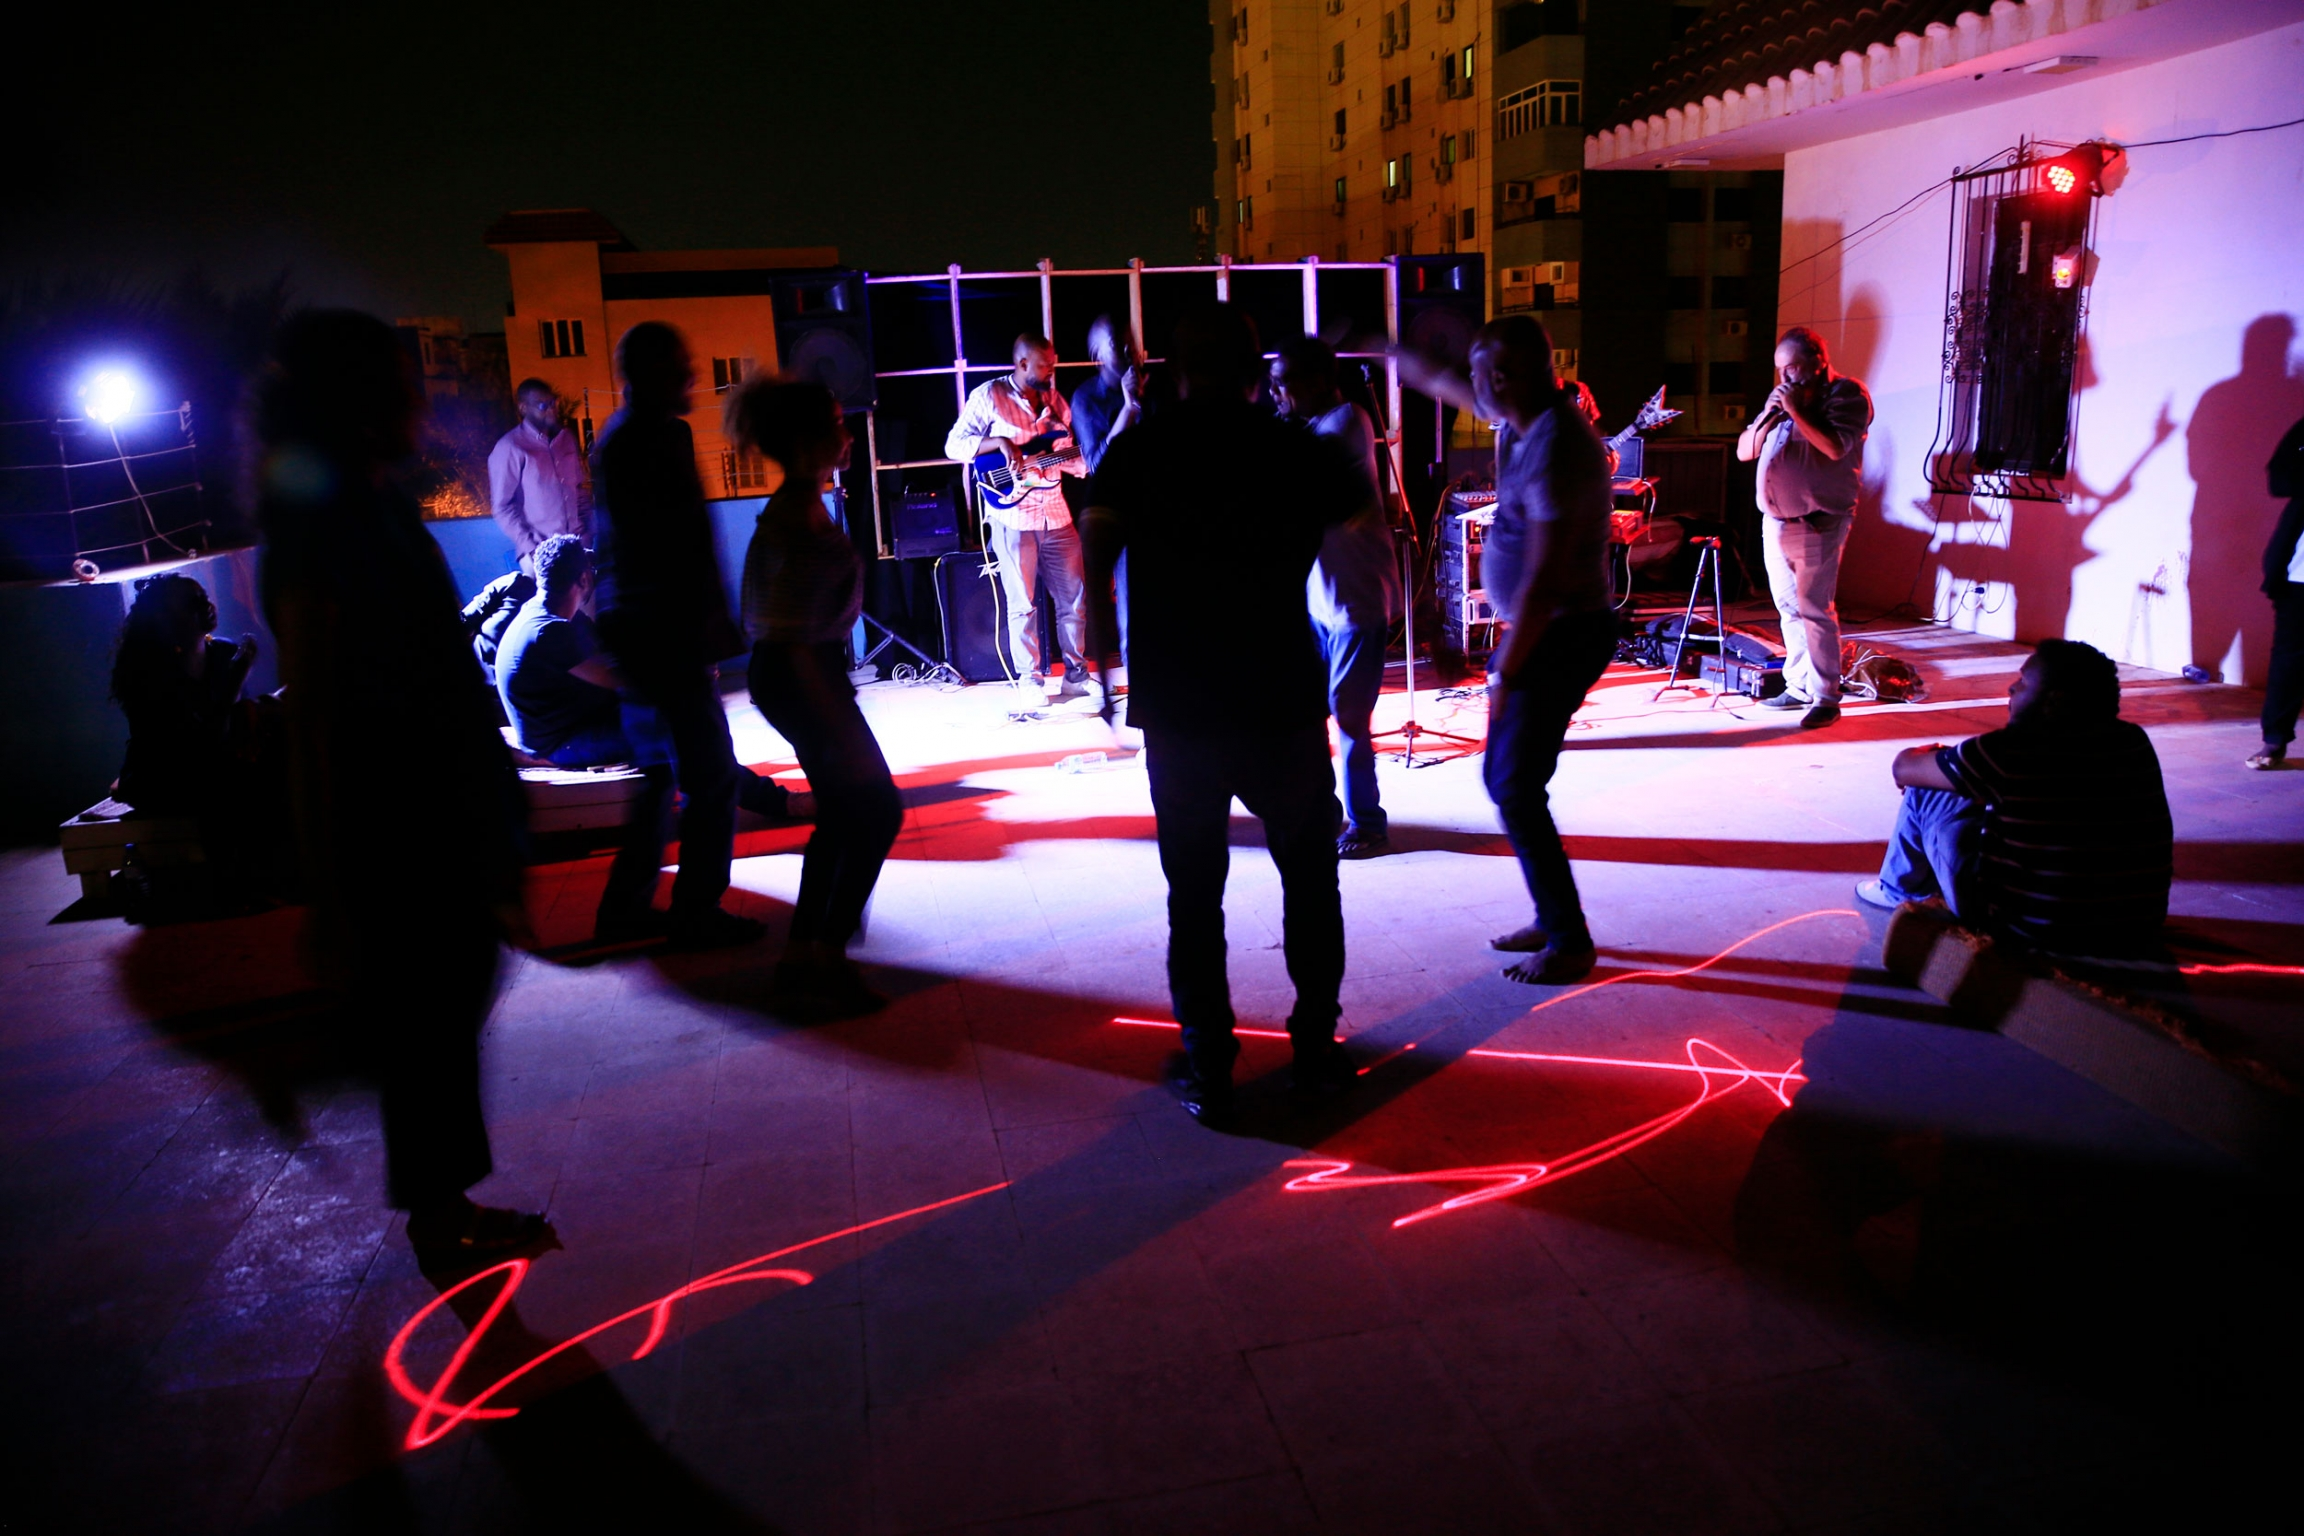 A crowd of people are shown in purple and red lighting, dancing with a band playing in the distance.